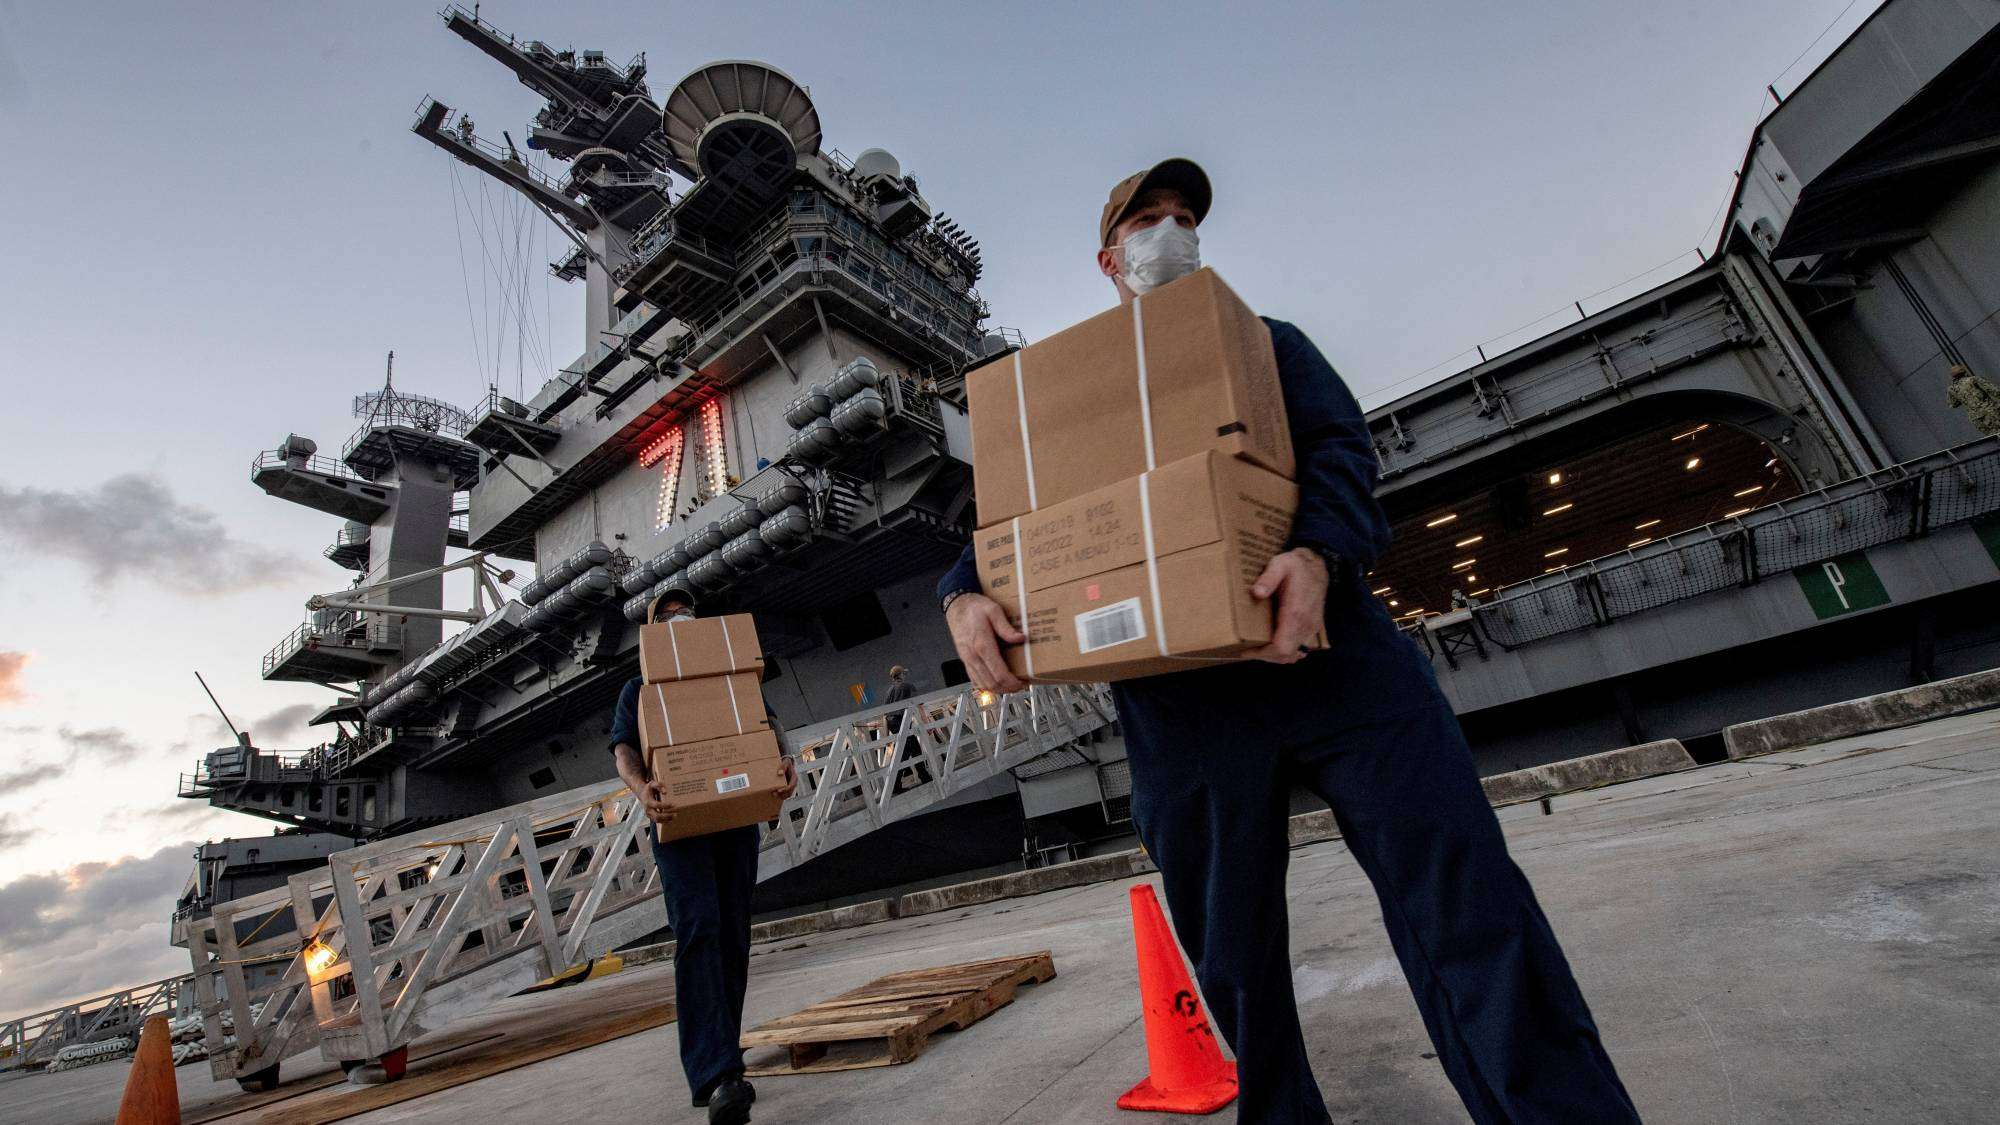 U.S. Navy sailors assigned to the aircraft carrier USS Theodore Roosevelt move meals ready to eat (MREs) for sailors who have tested negative for the new coronavirus and are asymptomatic while quarantined at local hotels in an effort to implement social distancing at the naval base on the Pacific island of Guam on April 7.